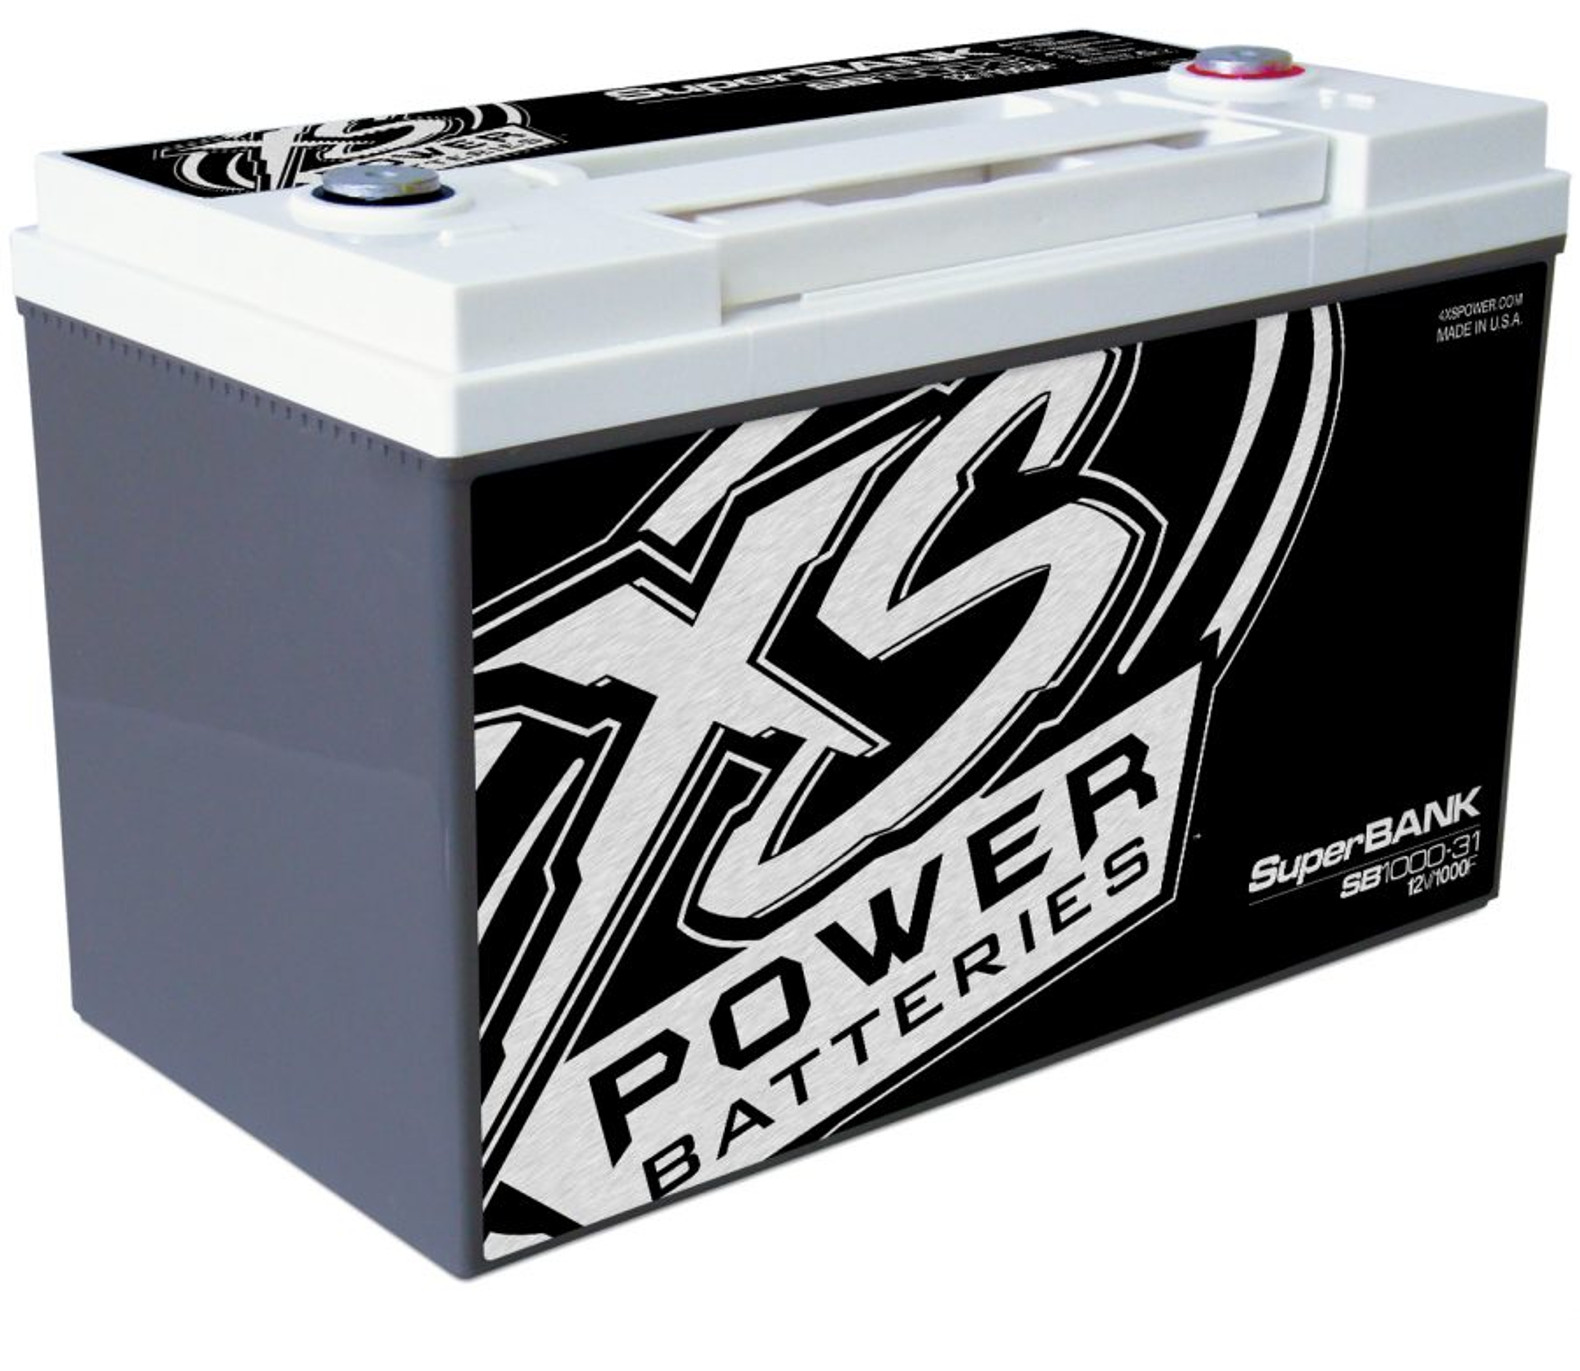 xs power 12v super capacitor bank, group 31, max power 8,000w, 1,000